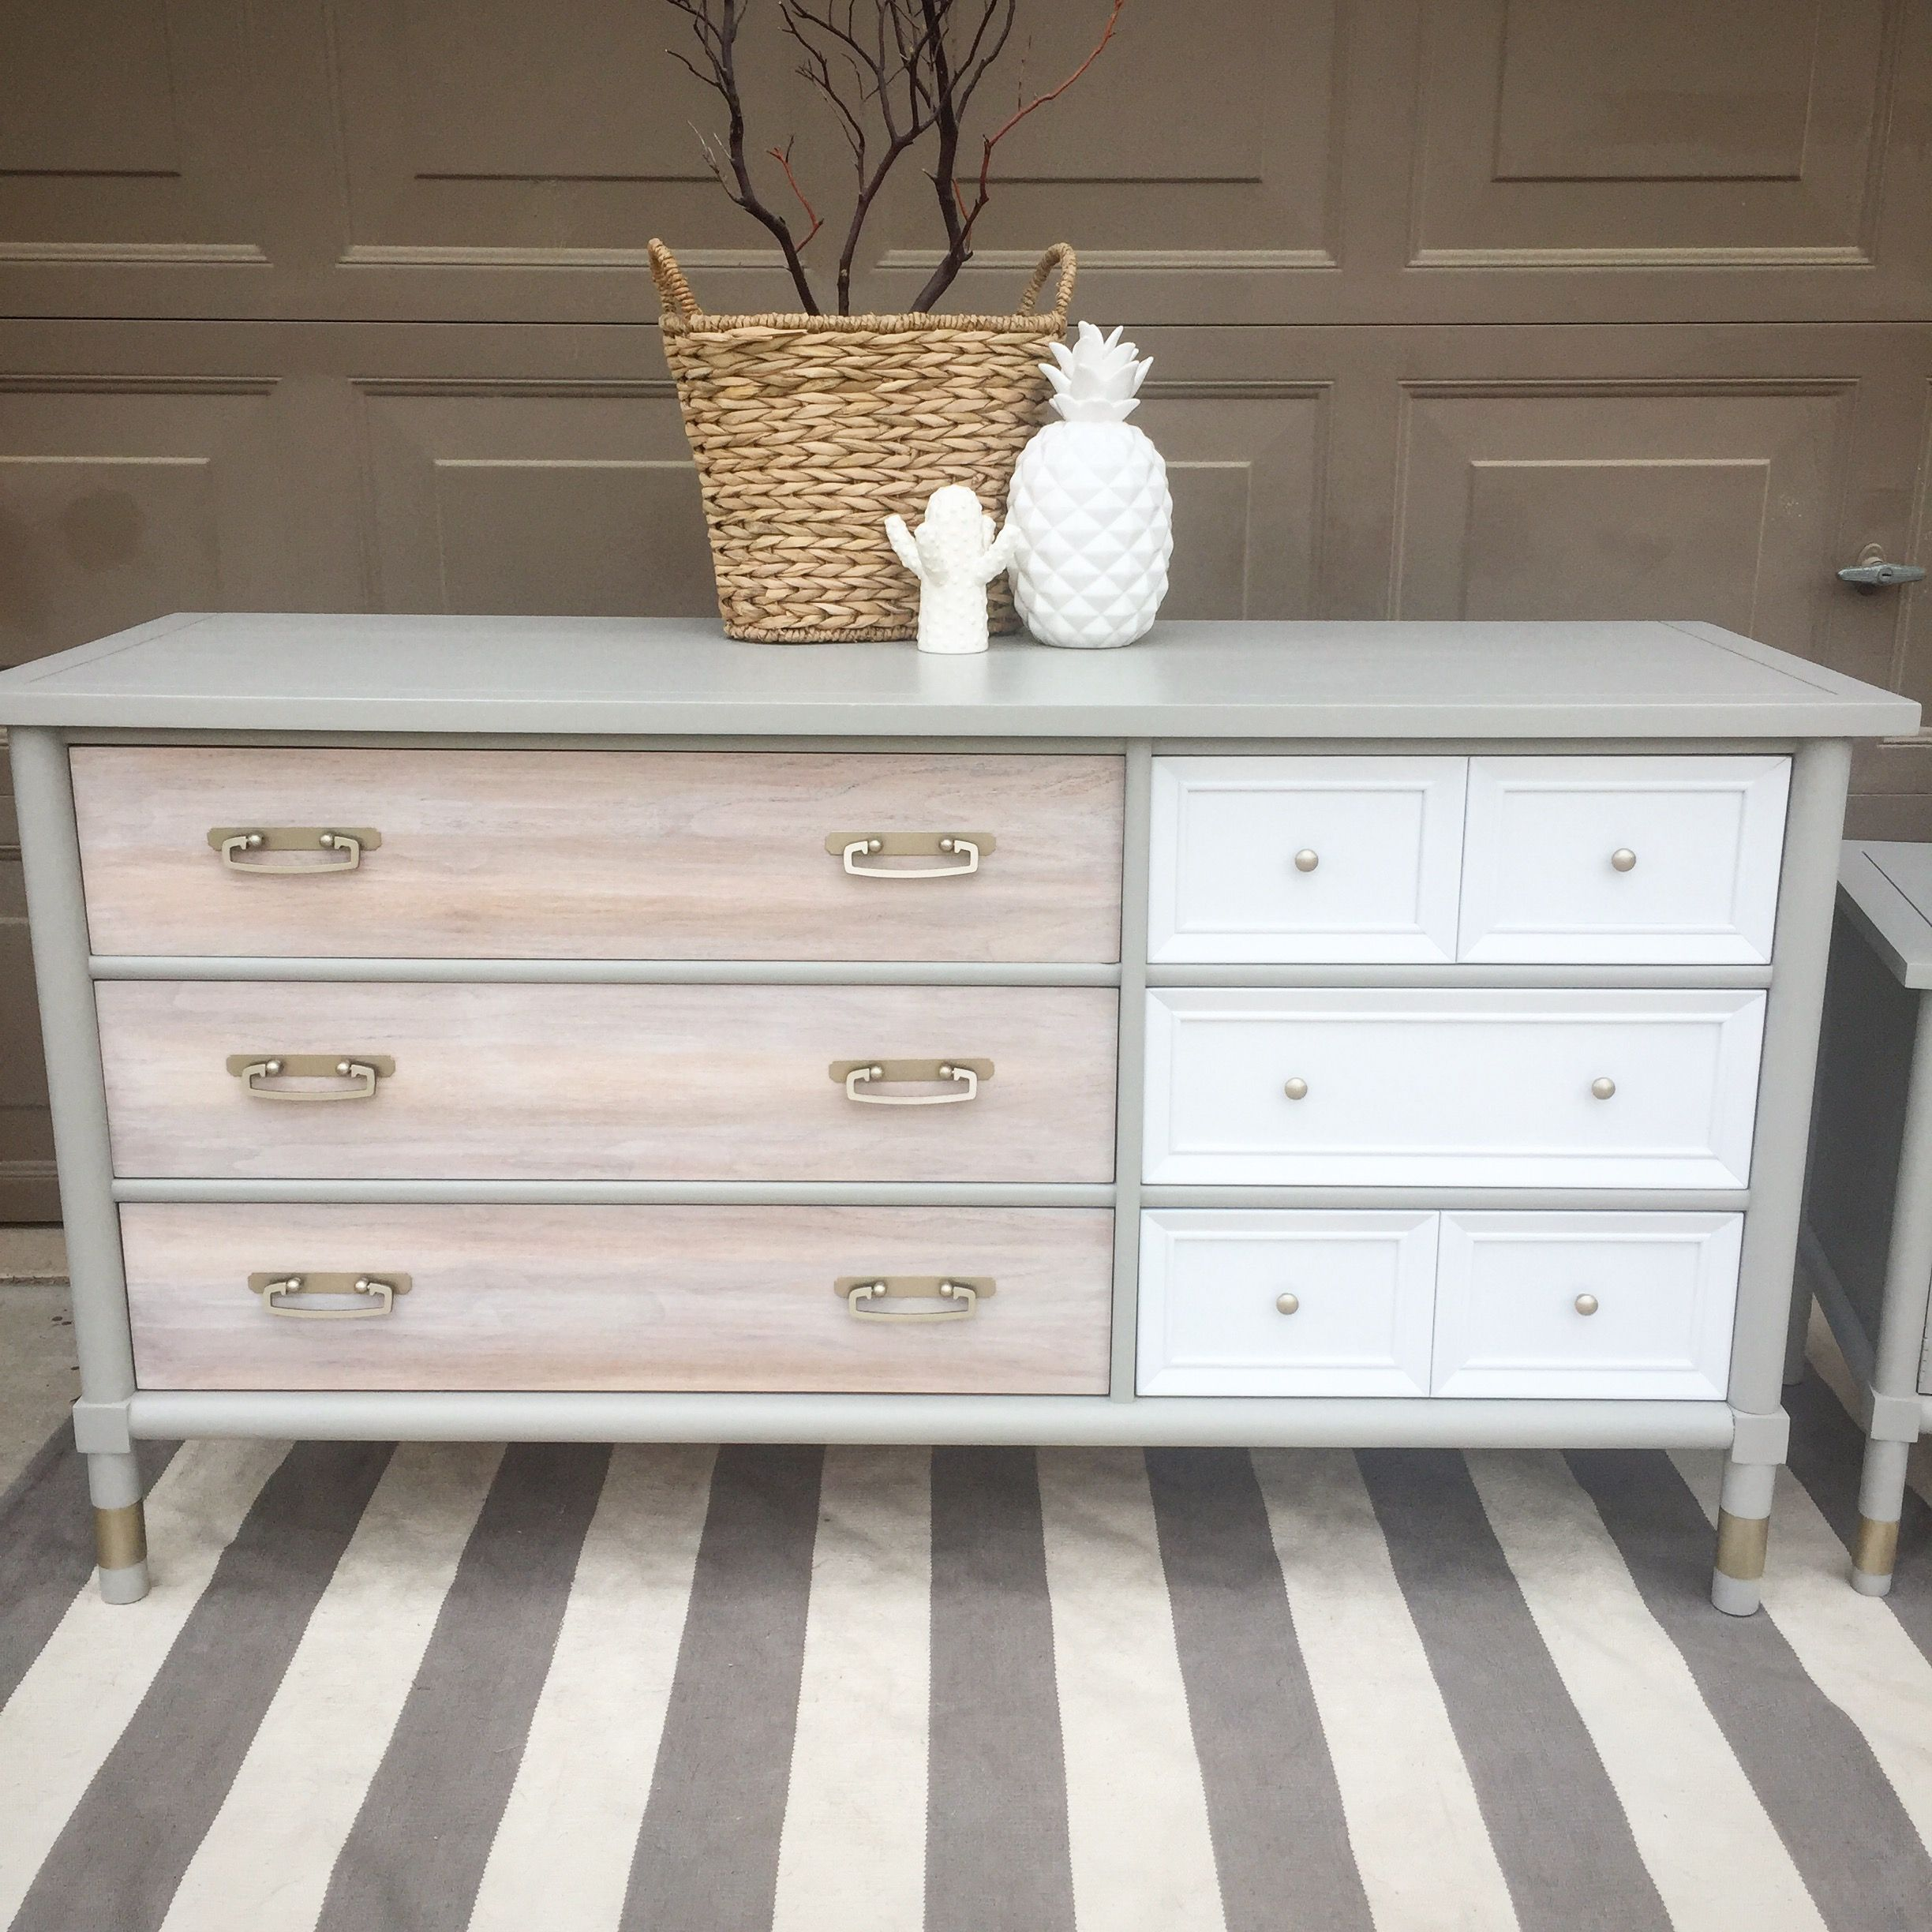 American Of Martinsville Dresser Refinished White Light Stained Drawers White Drawers And Gray Bo Grey Painted Furniture Furniture Rehab Refinishing Furniture [ 2448 x 2448 Pixel ]